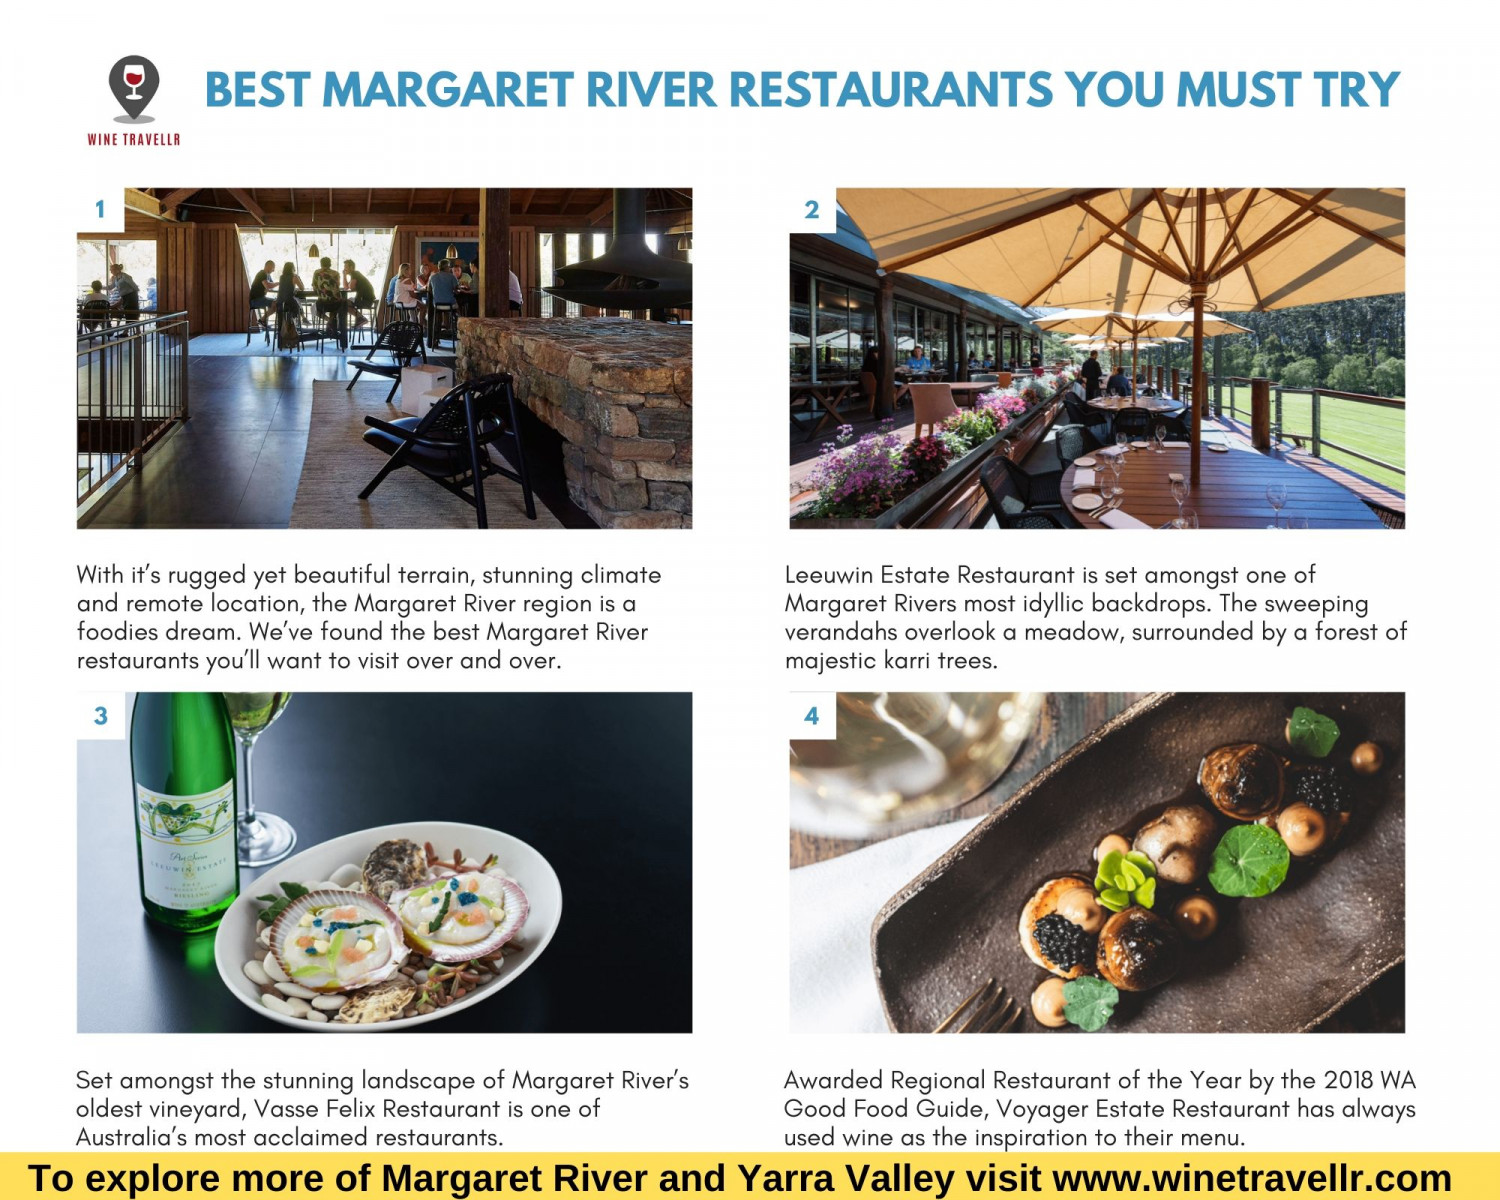 Best Margaret River Restaurants You Must Try Infographic